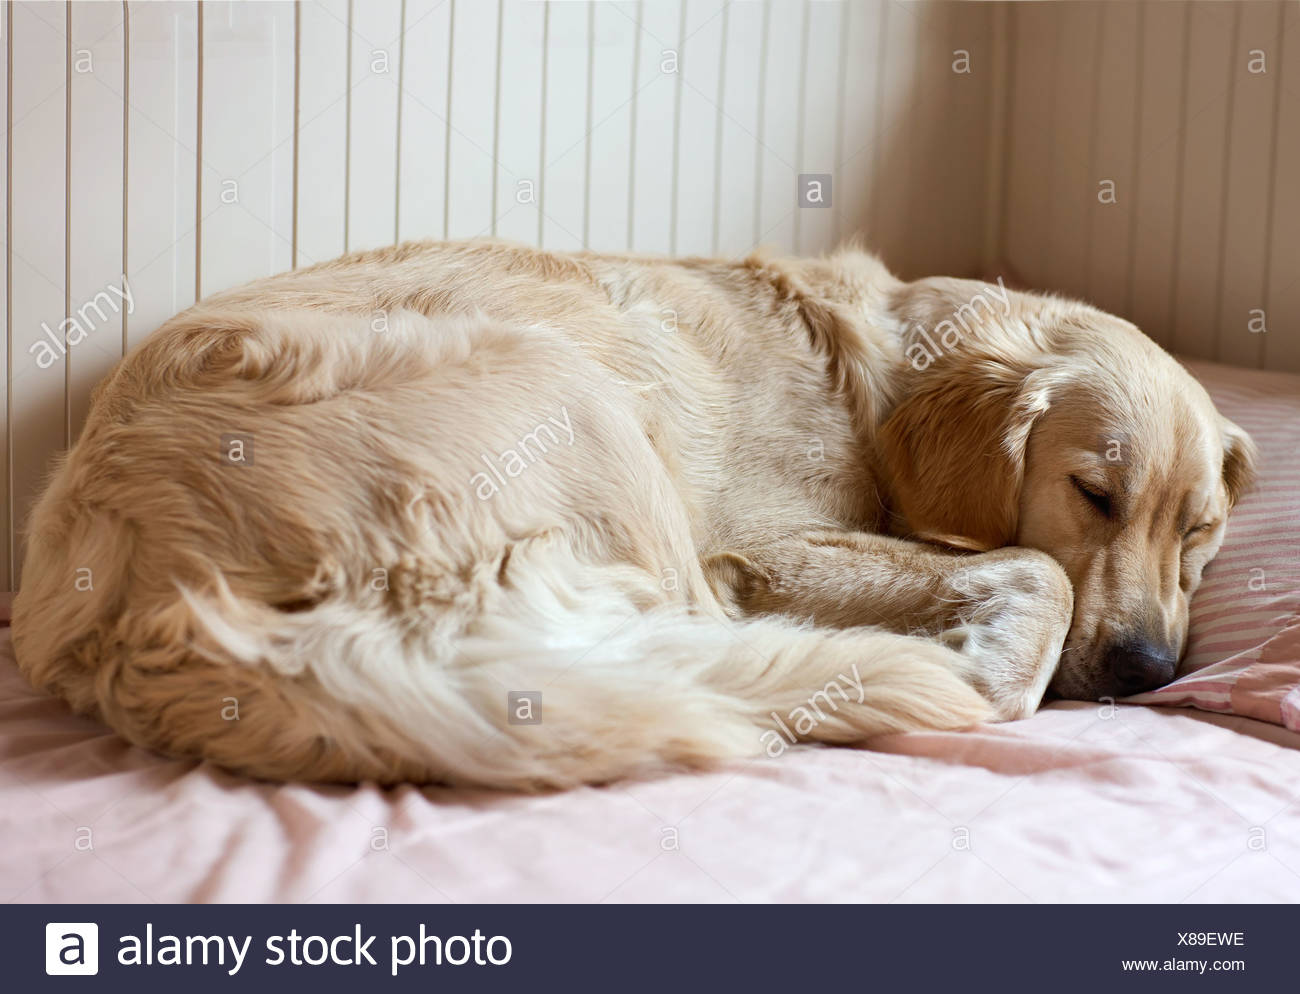 Dog sleeping on the bed - golden retriever - Stock Image